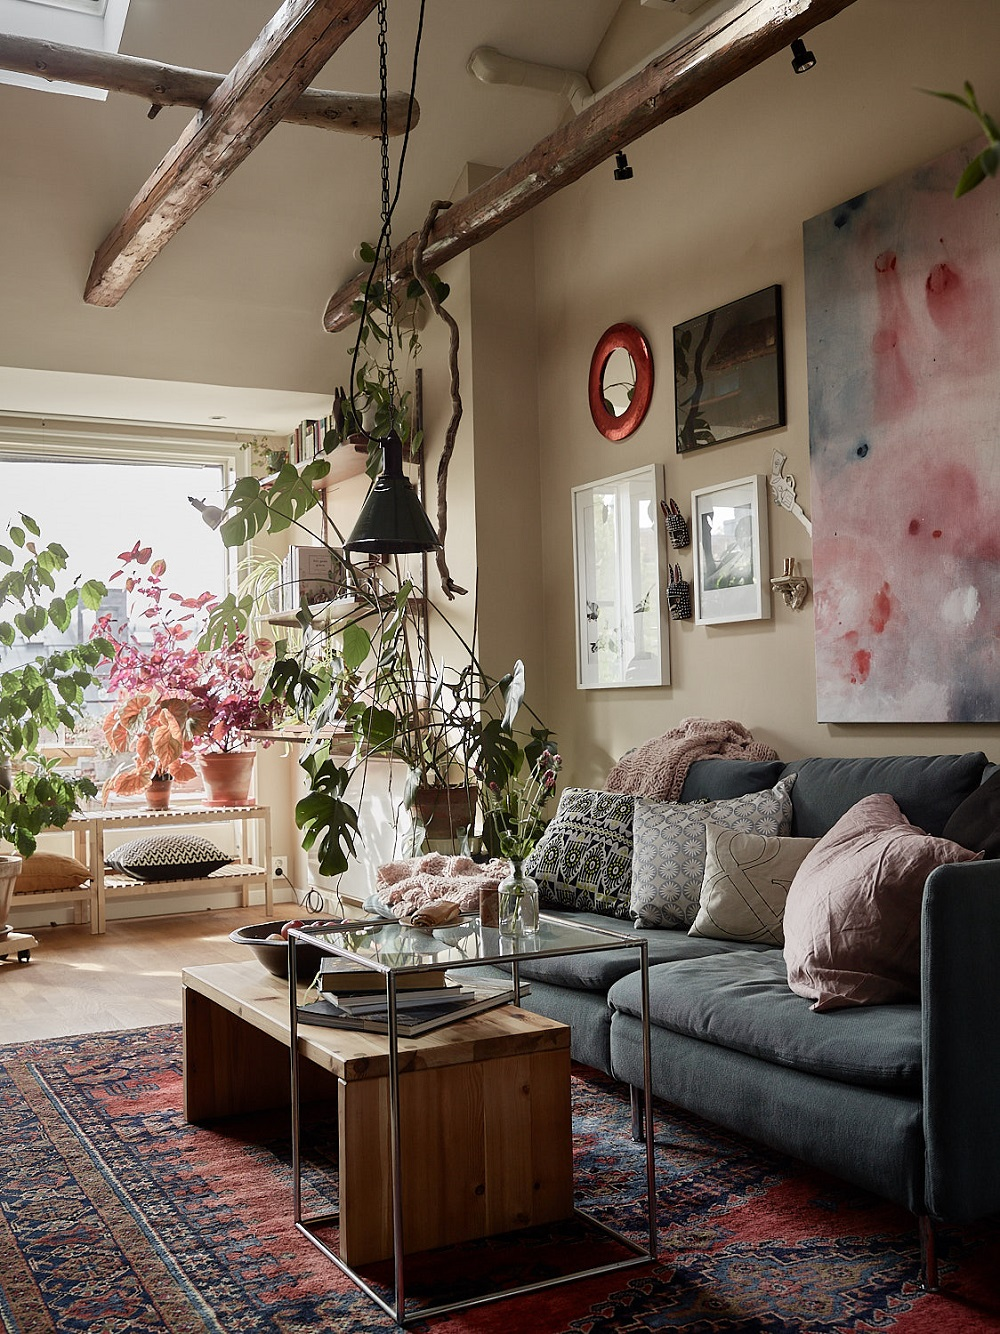 The Nordroom: A Cozy Plant-Filled Attic Apartment